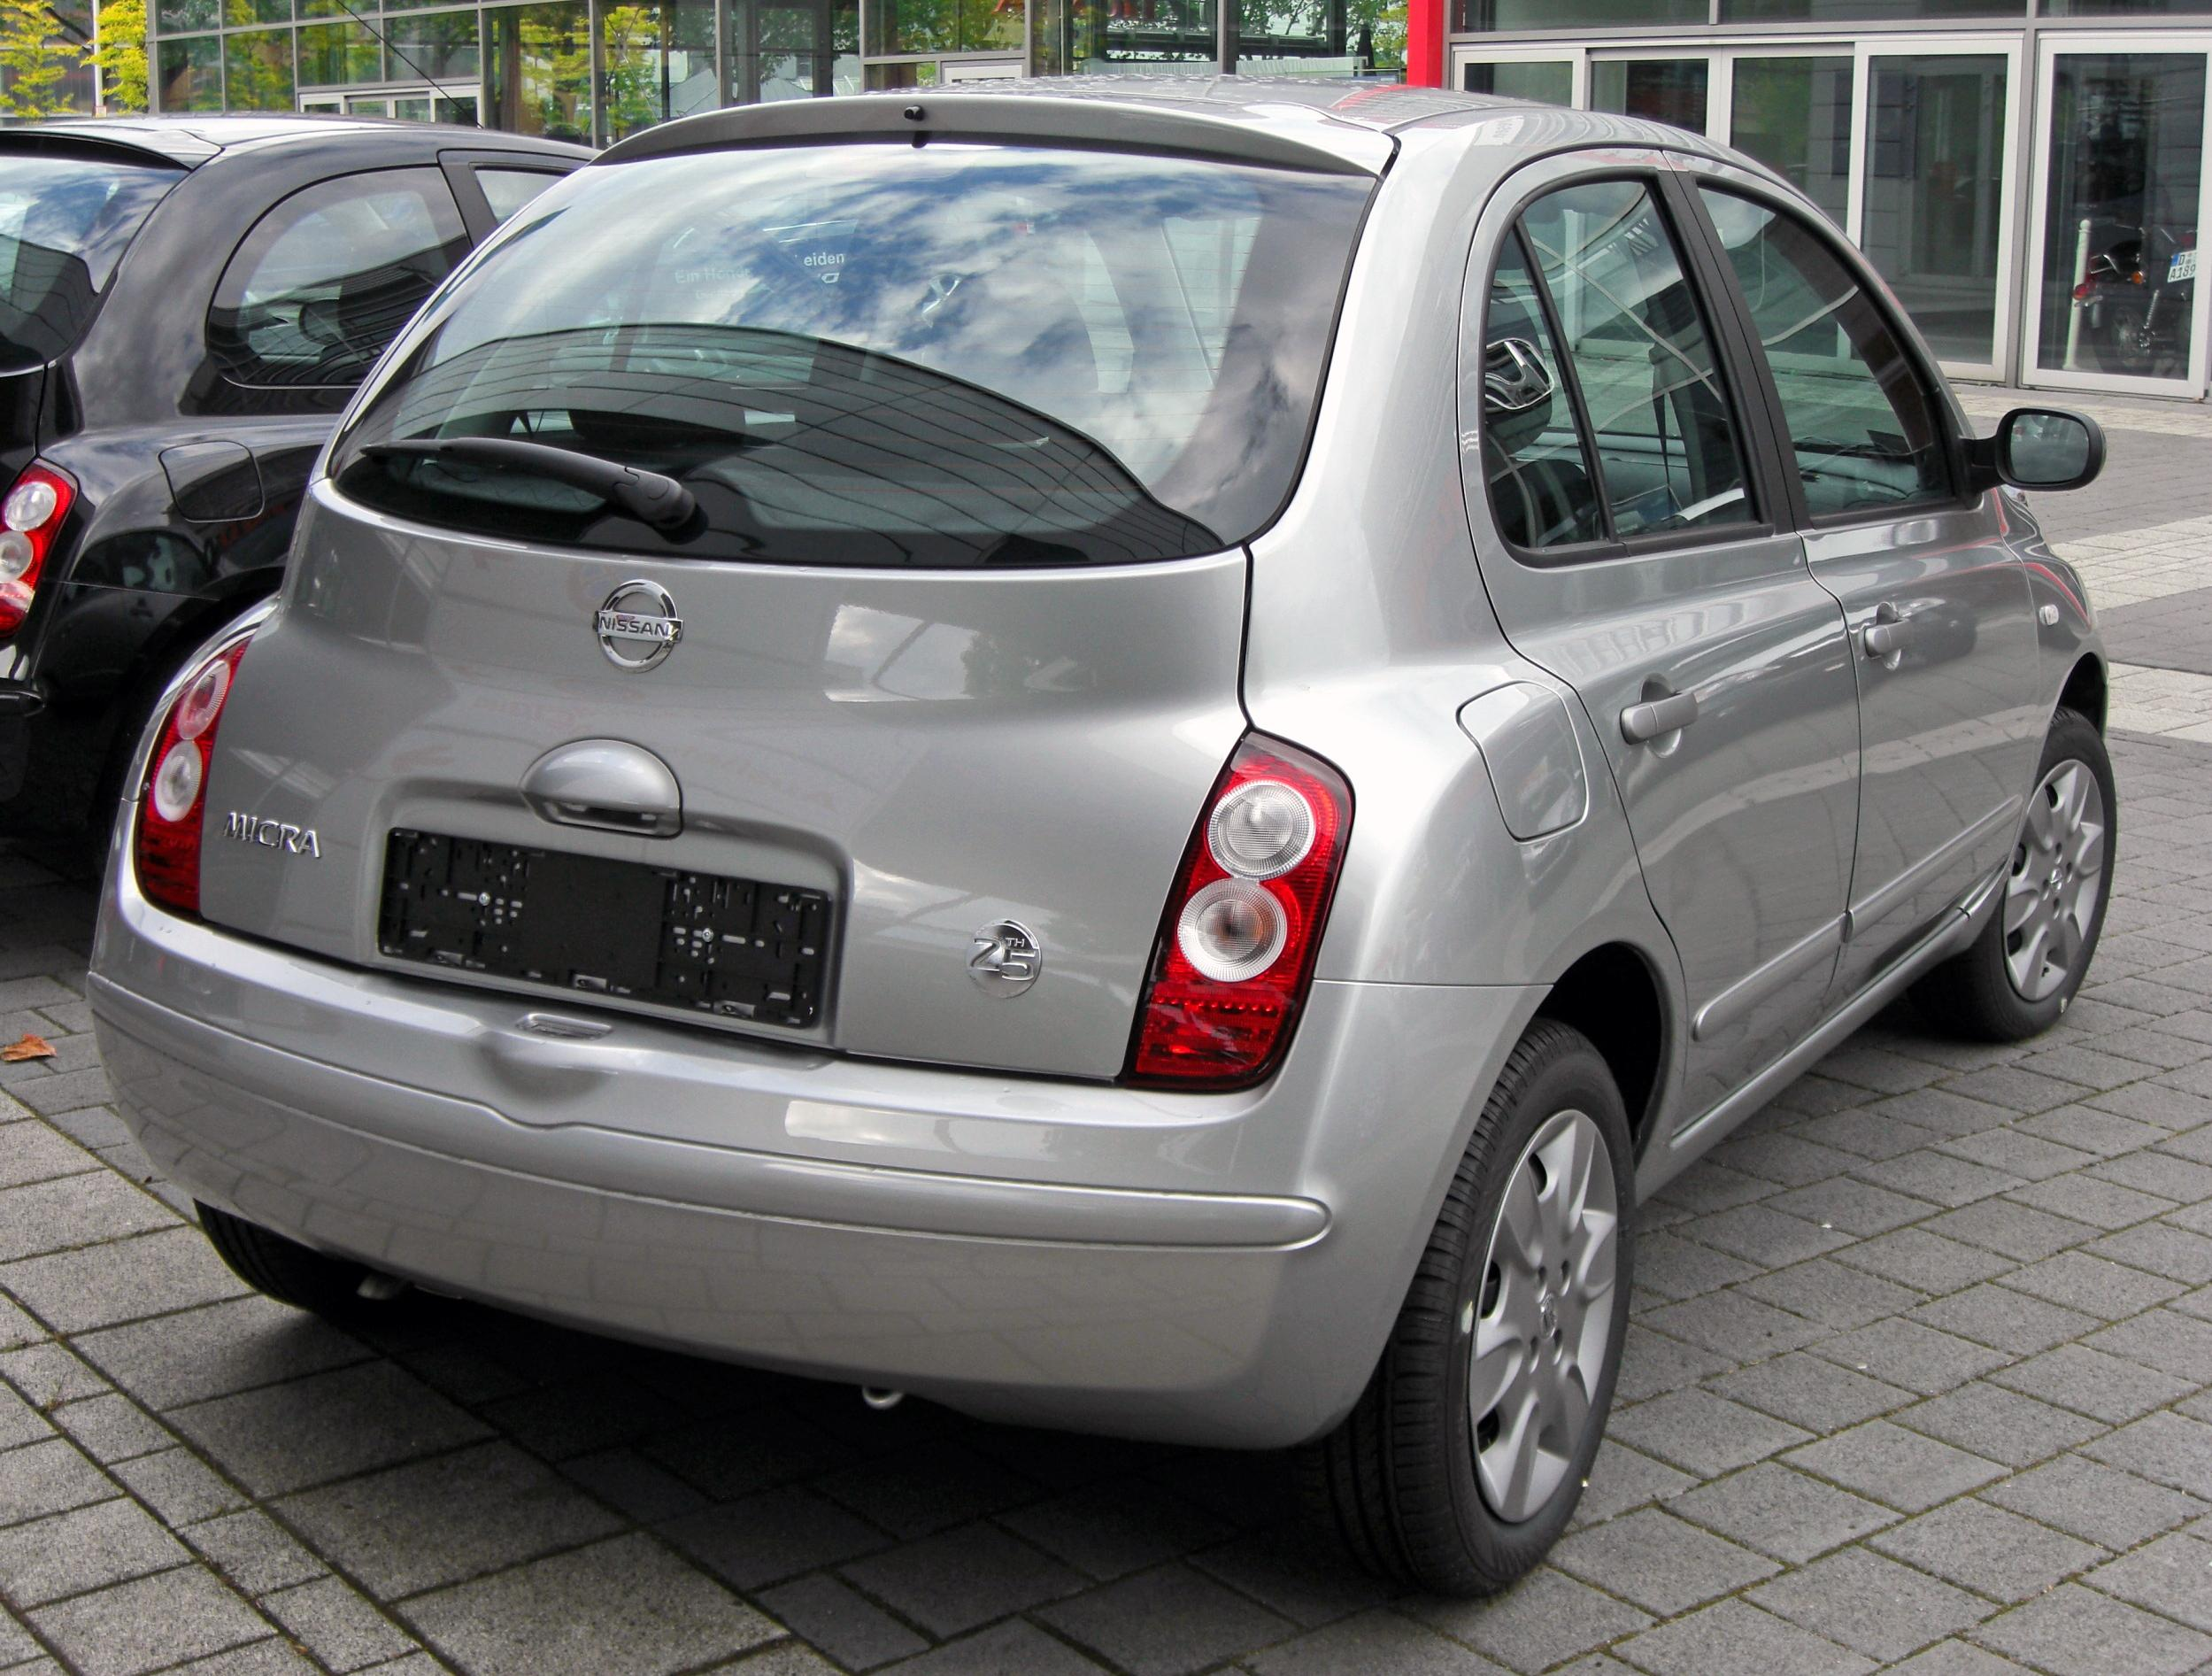 datei nissan micra iii facelift 25th jubil umsmodell 20090614 rear jpg wikipedia. Black Bedroom Furniture Sets. Home Design Ideas